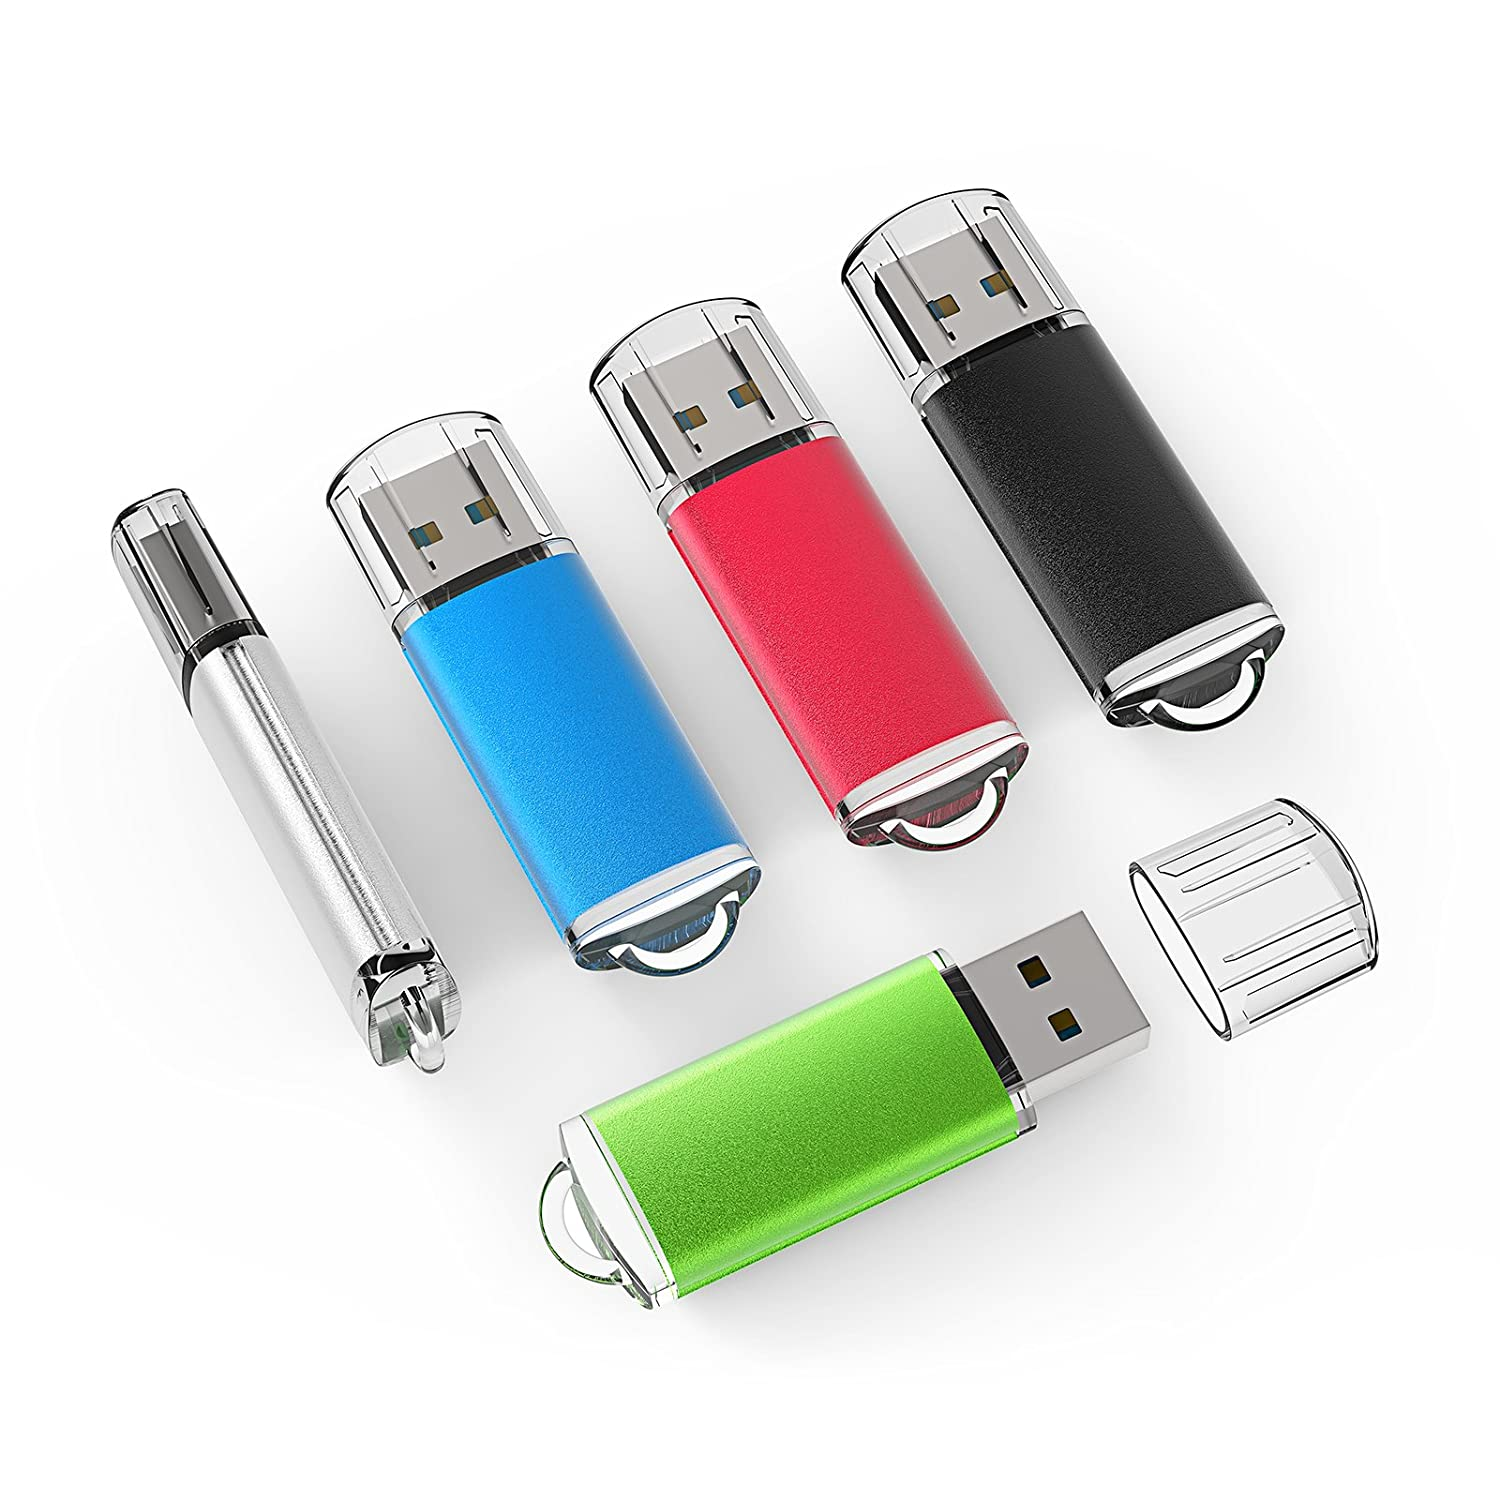 Amazon.com: TOPSELL 5 Pack 4GB USB 2.0 Flash Drive Memory Stick Thumb Drives  (5 Mixed Colors: Black Blue Green Red Silver): Computers & Accessories